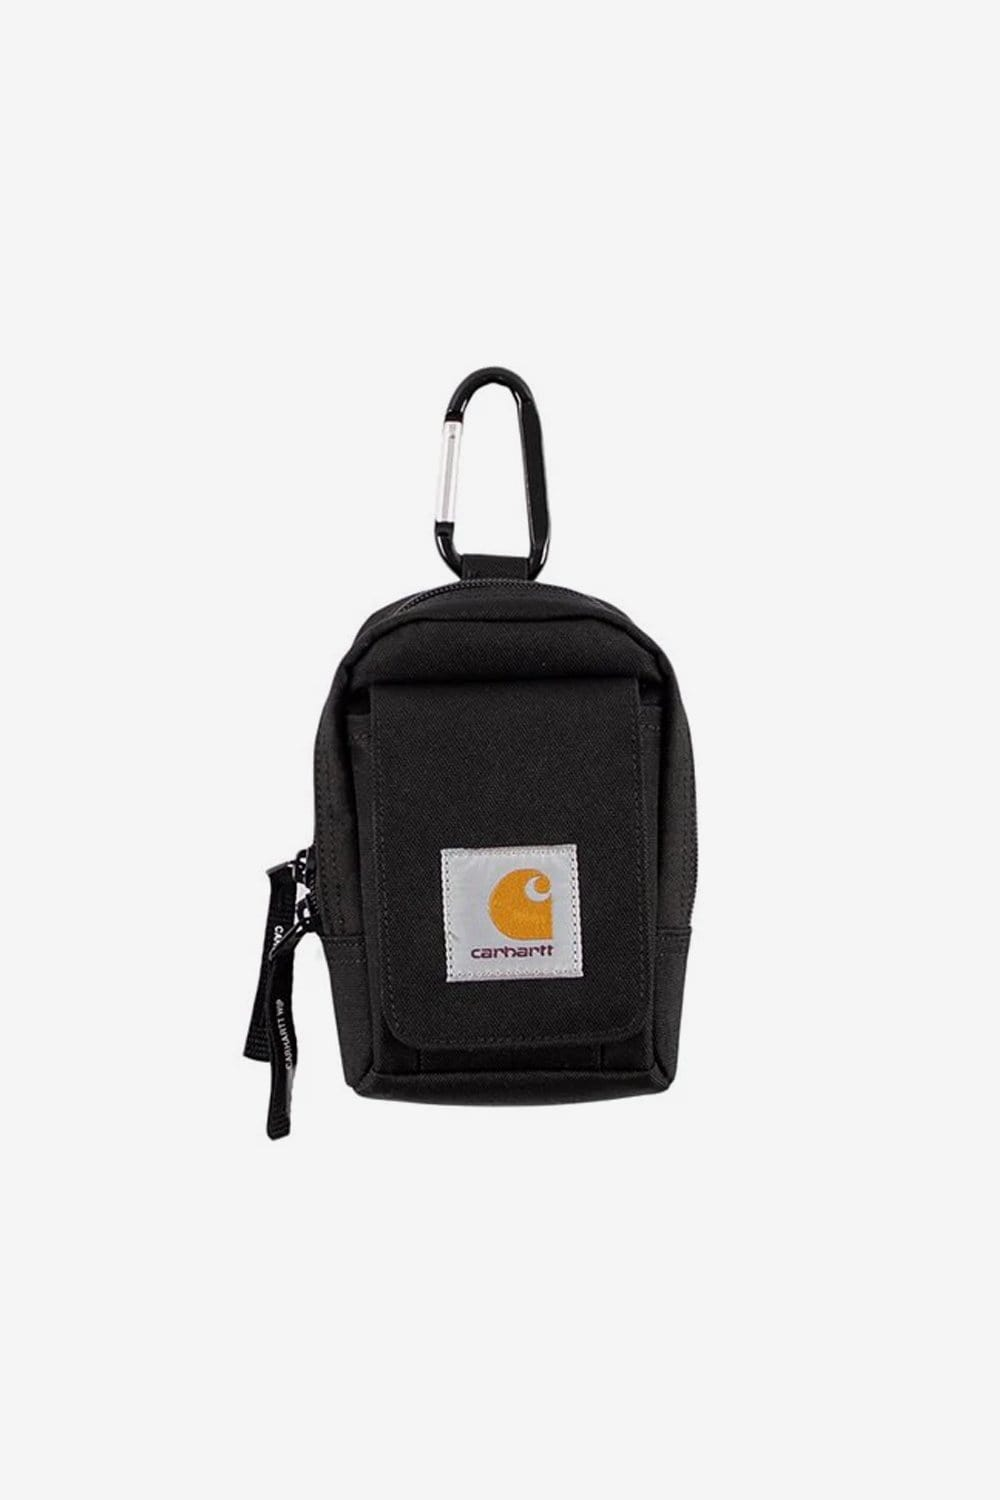 Carhartt WIP OS Small Bag Black